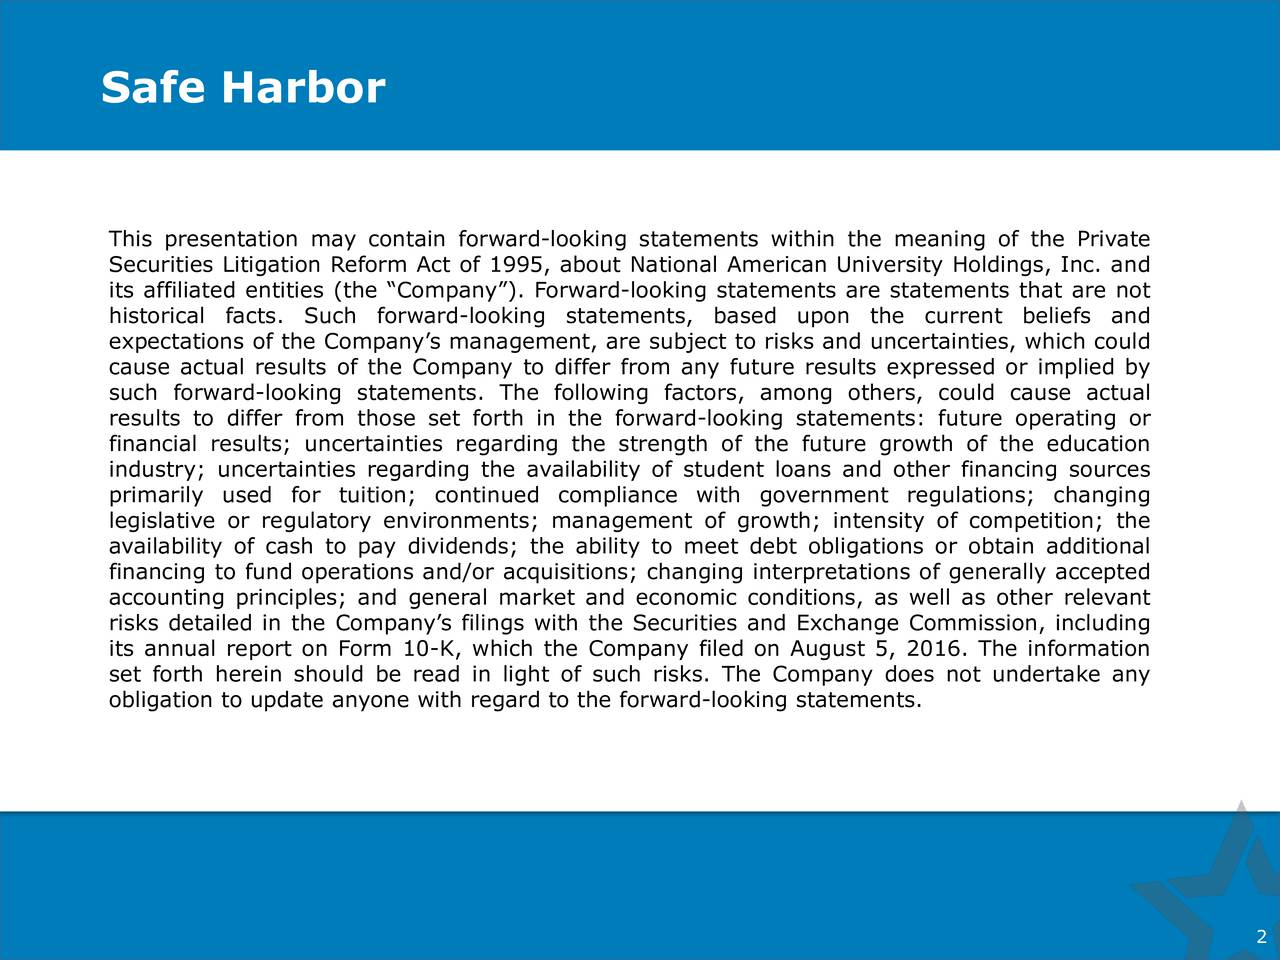 2 Safe Harbor This presentation may contain forward-looking statements within the meaning of the Private Securities Litigation Reform Act of 1995, about National American University Holdings, Inc. and its affiliated entities (the Company). Forward-looking statements are statements that are not historical facts. Such forward-looking statements, based upon the current beliefs and expectations of the Companys management, are subject to risks and uncertainties, which could cause actual results of the Company to differ from any future results expressed or implied by such forward-looking statements. The following factors, among others, could cause actual results to differ from those set forth in the forward-looking statements: future operating or financial results; uncertainties regarding the strength of the future growth of the education industry; uncertainties regarding the availability of student loans and other financing sources primarily used for tuition; continued compliance with government regulations; changing legislative or regulatory environments; management of growth; intensity of competition; the availability of cash to pay dividends; the ability to meet debt obligations or obtain additional financing to fund operations and/or acquisitions; changing interpretations of generally accepted accounting principles; and general market and economic conditions, as well as other relevant risks detailed in the Companys filings with the Securities and Exchange Commission, including its annual report on Form 10-K, which the Company filed on August 5, 2016. The information set forth herein should be read in light of such risks. The Company does not undertake any obligation to update anyone with regard to the forward-looking statements.